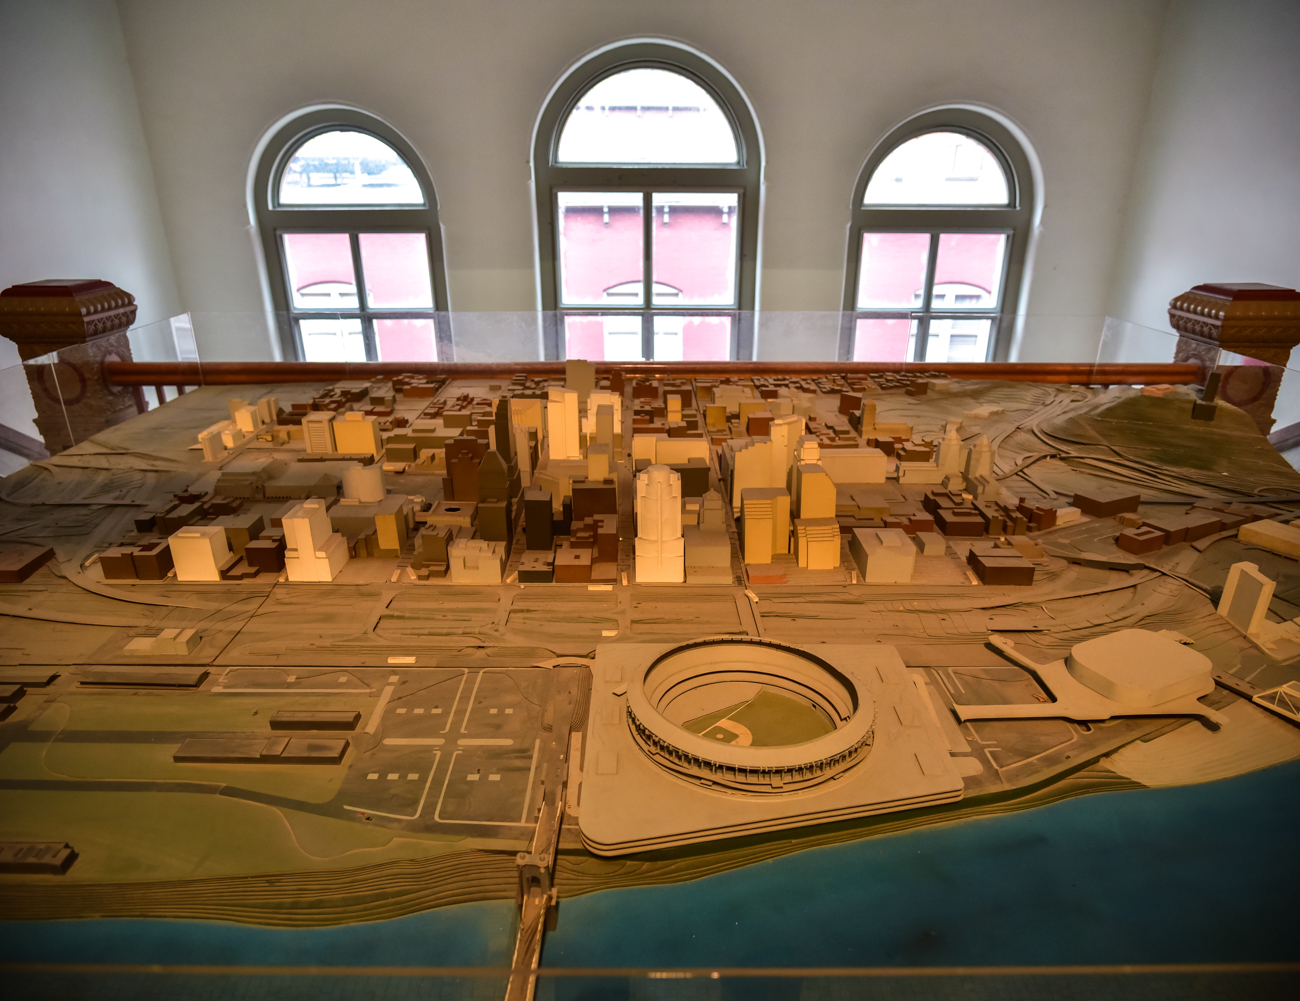 An outdated model of Cincinnati sits upon folding tables on the top floor at the back of City Hall. The now-demolished Riverfront stadium and lack of Great American Tower are among the most obvious differences between today's city and the layout presented in this scale model. / Image: Phil Armstrong, Cincinnati Refined // Published: 1.20.17